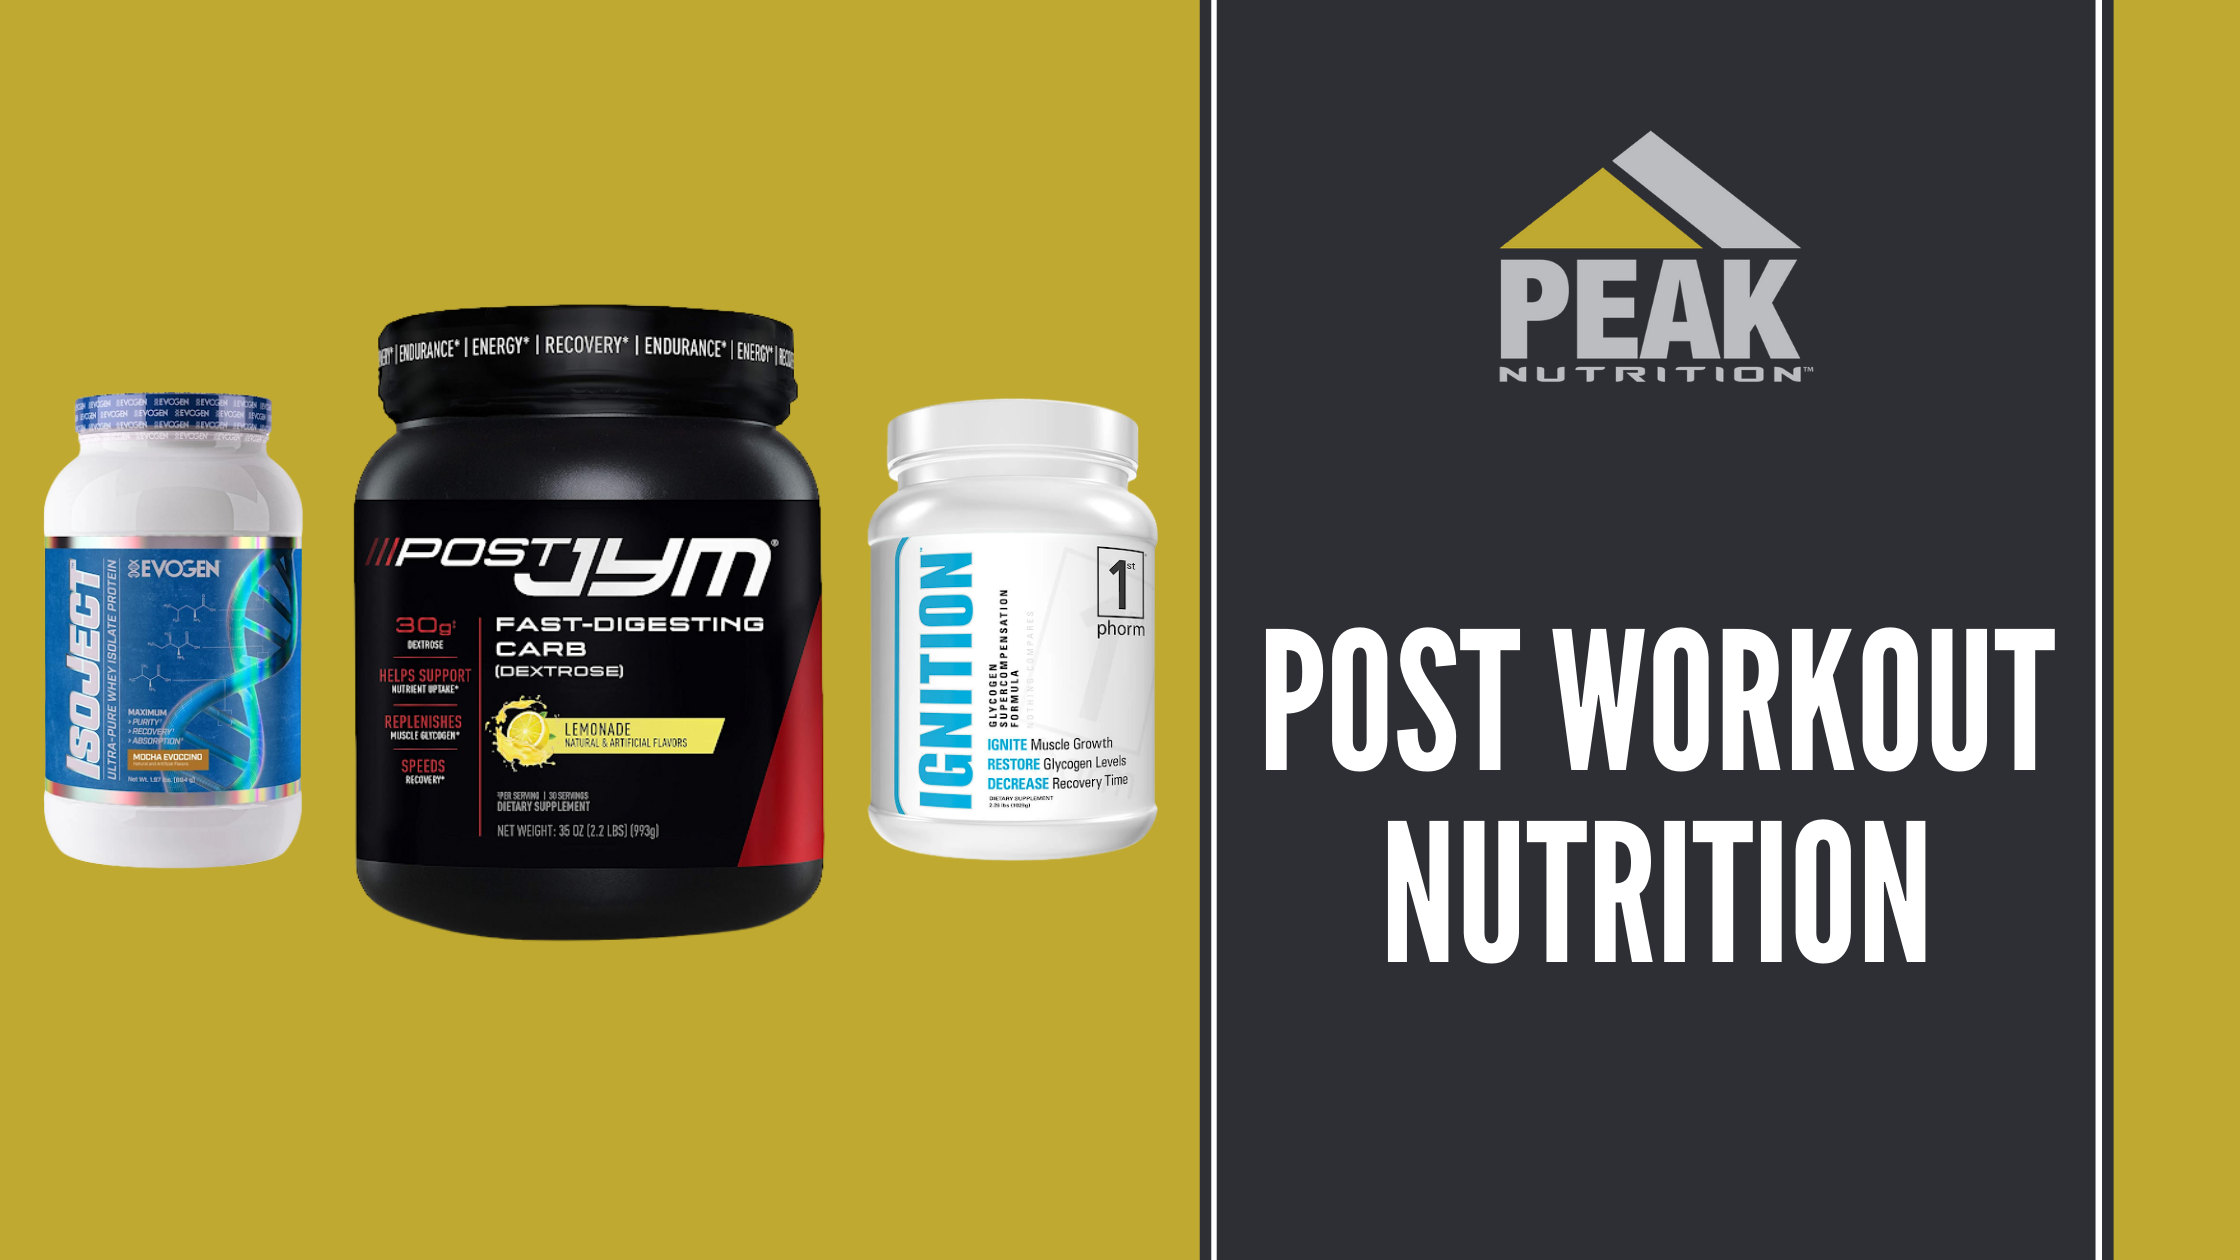 post workout glucose, carbs and protein peak nutrition